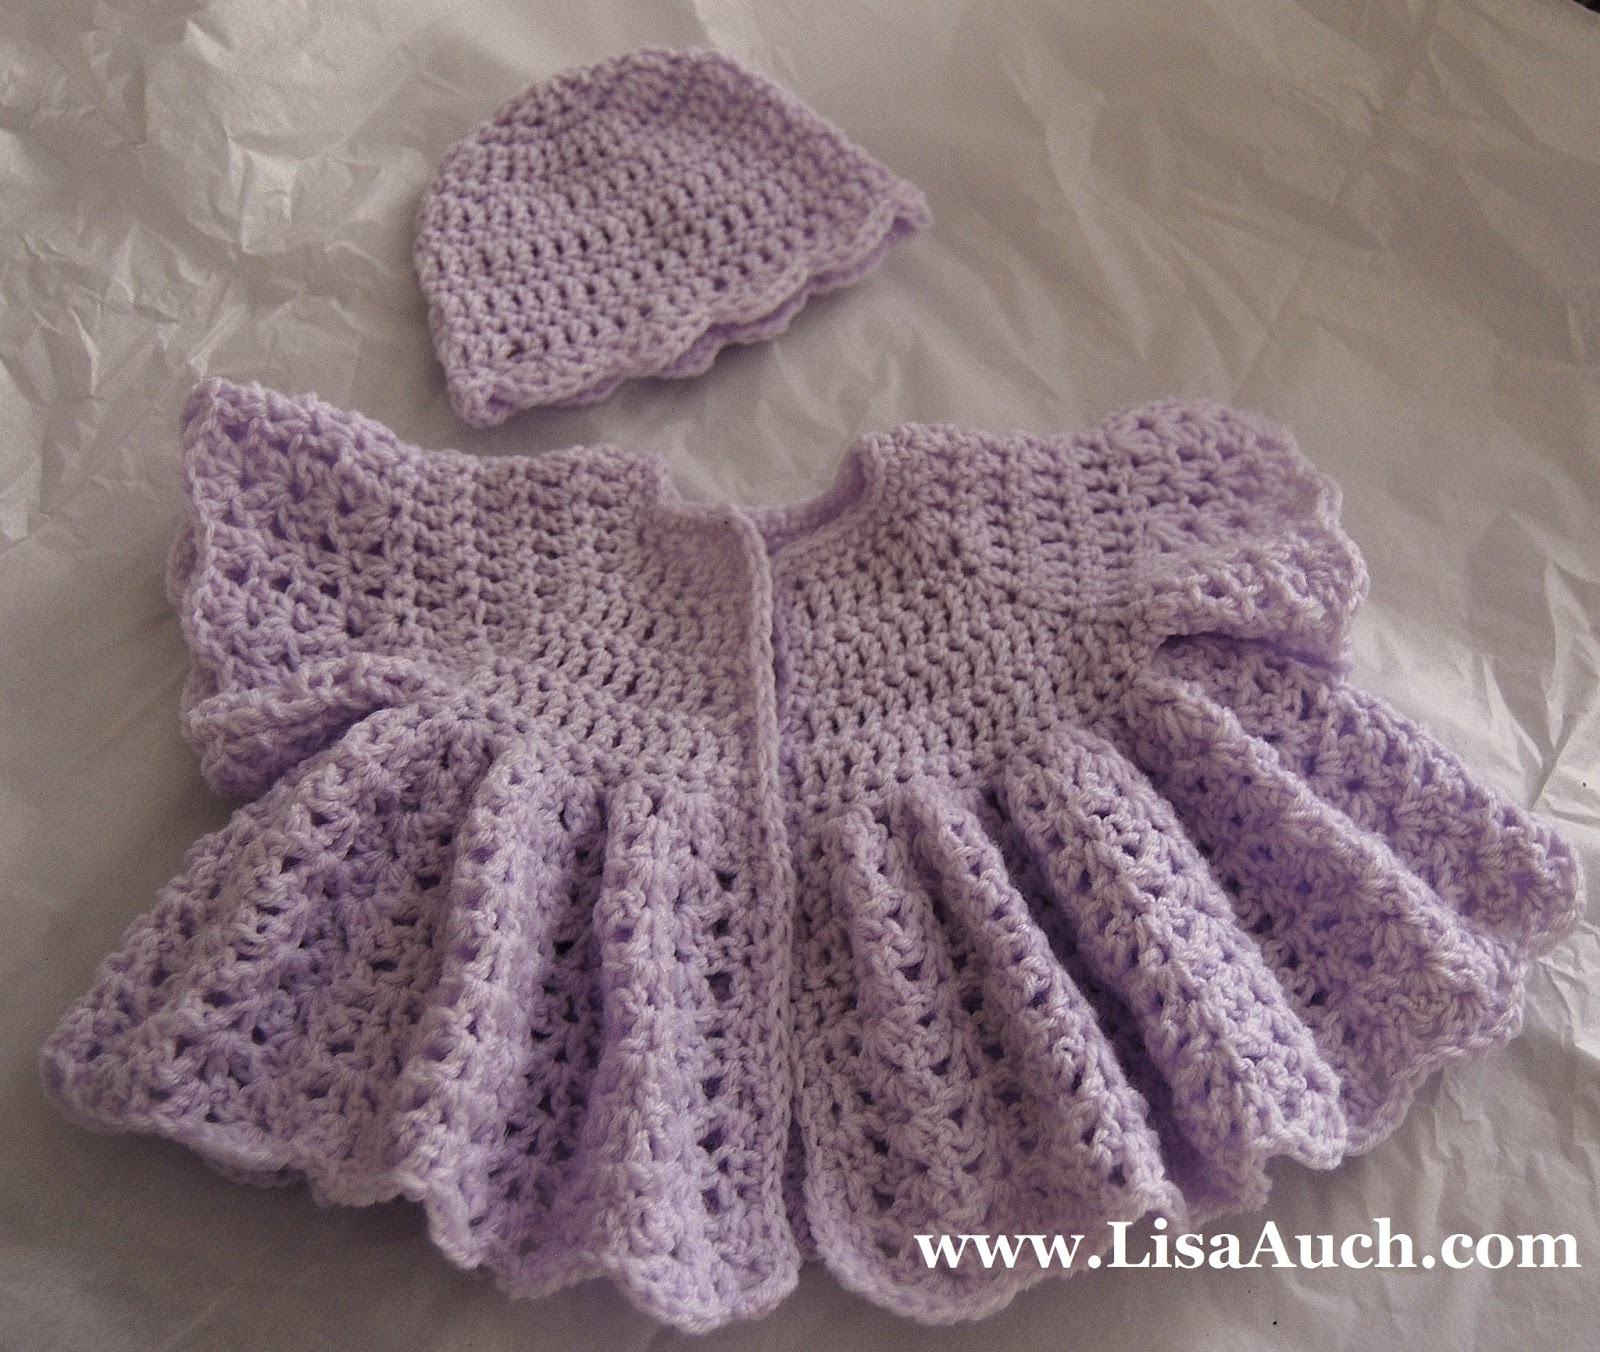 Free Crochet Patterns For Babies : Free Crochet Sweater Patterns for Babies